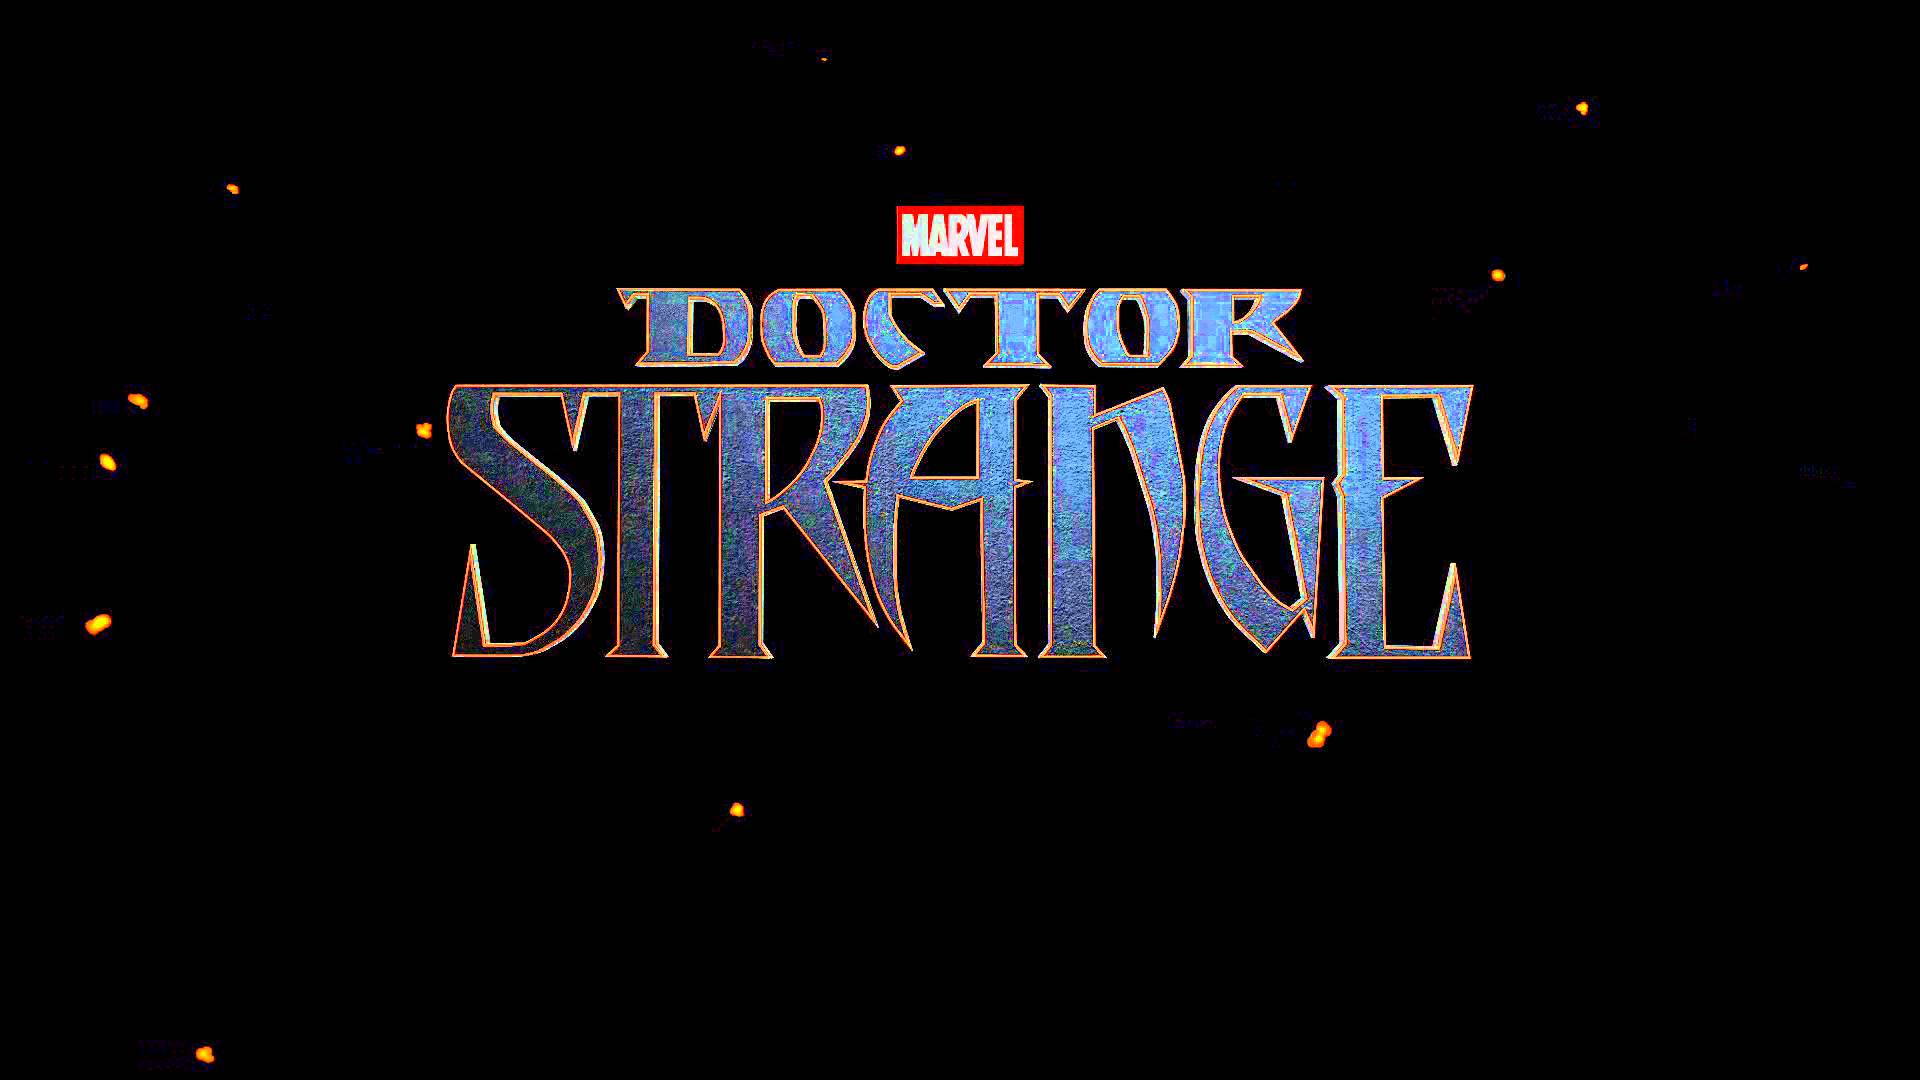 Christian Bale Iphone Wallpaper Doctor Strange Wallpapers High Resolution And Quality Download